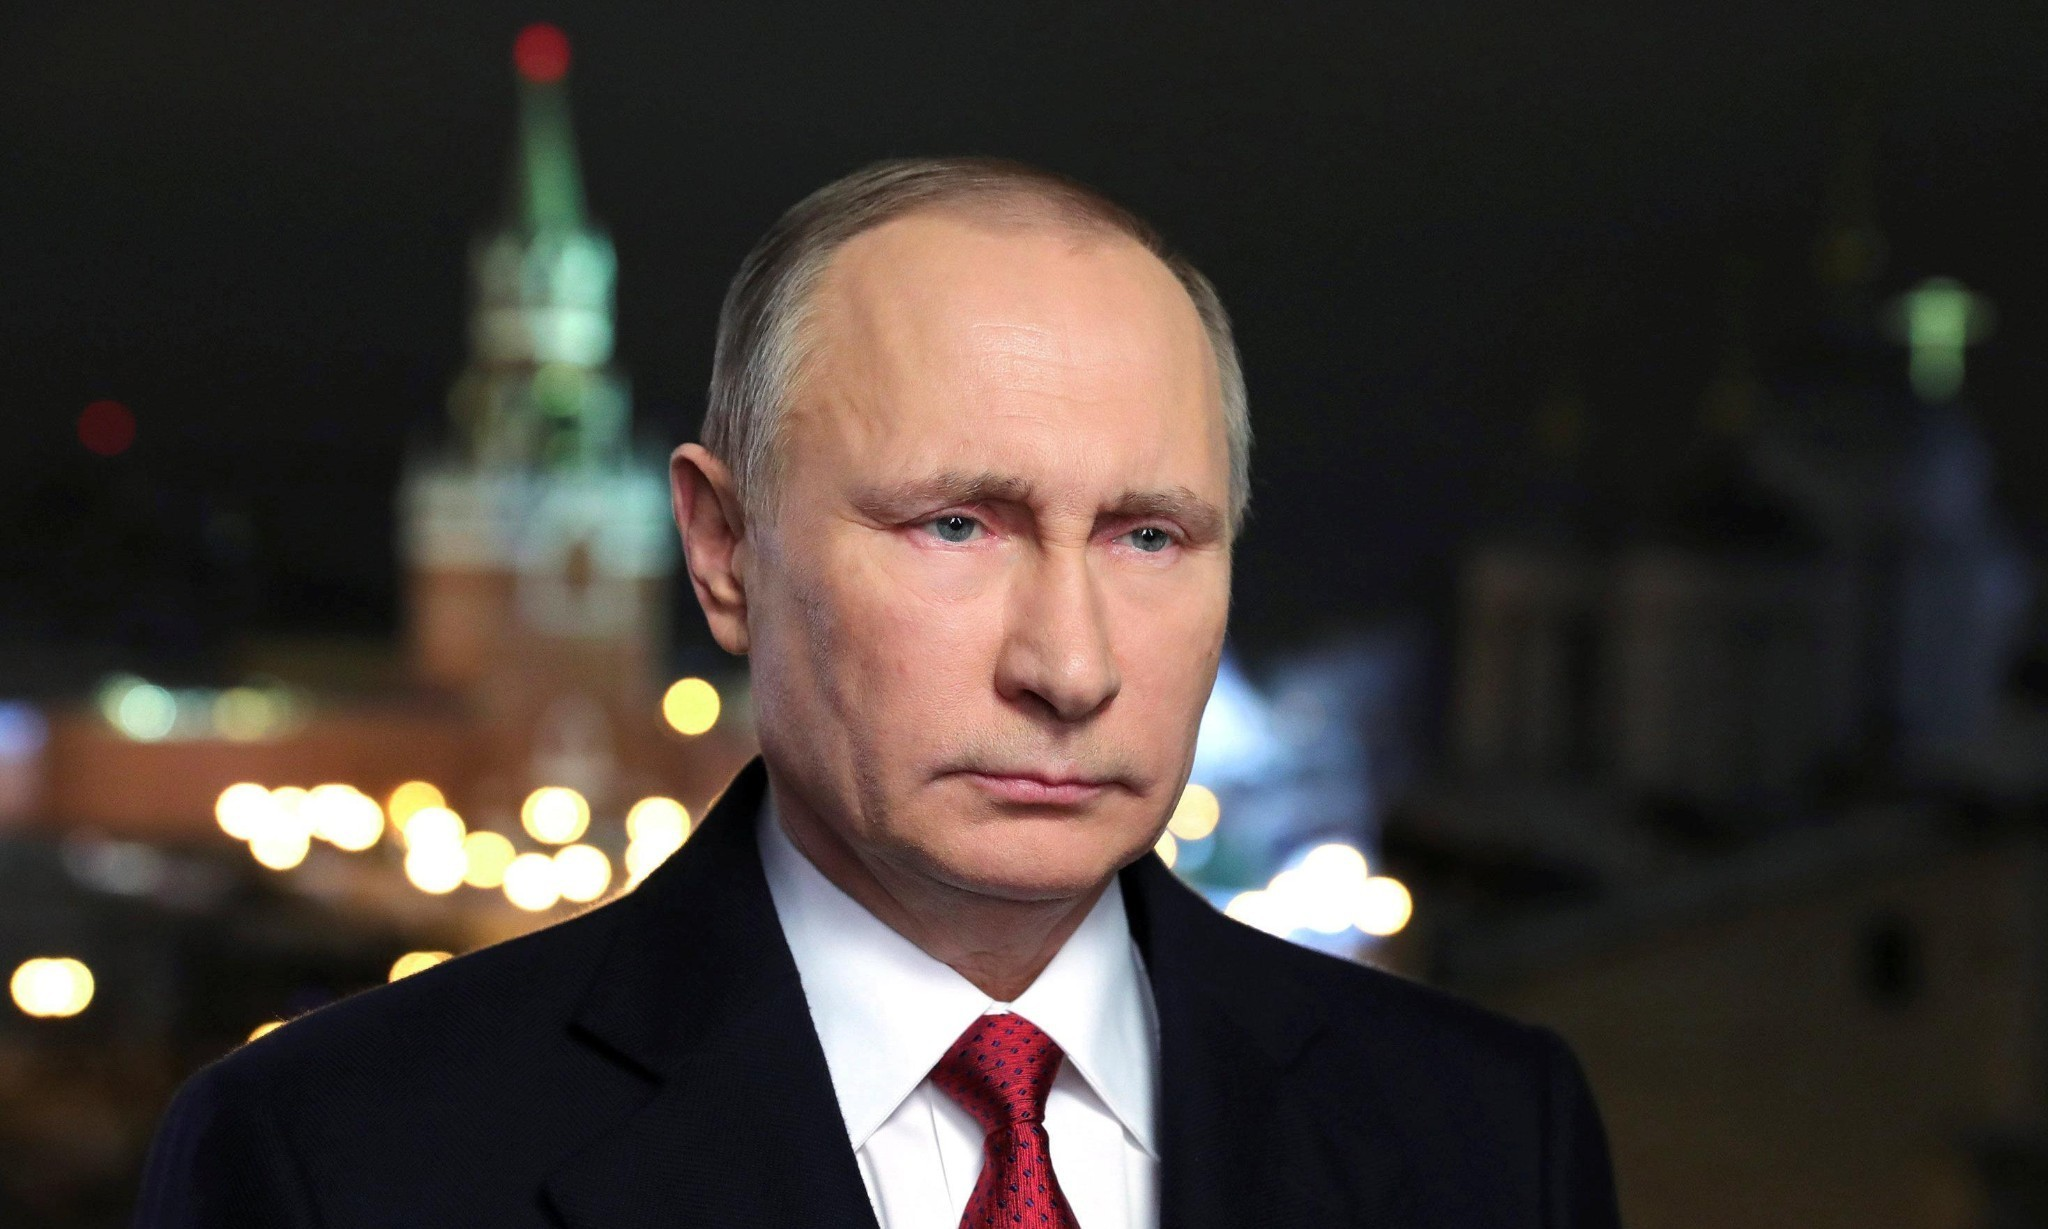 Vladimir Putin: behold, the other man of the moment